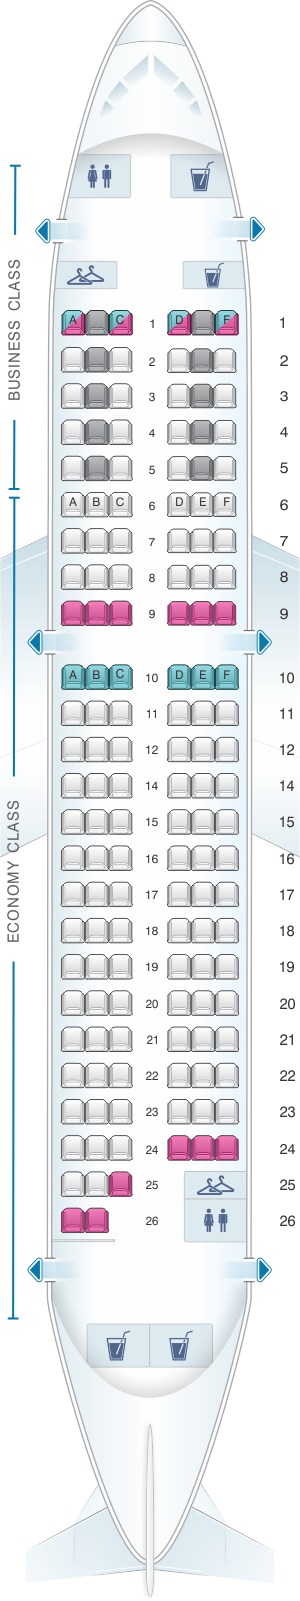 Seat map for Air France Airbus A319 Europe V2